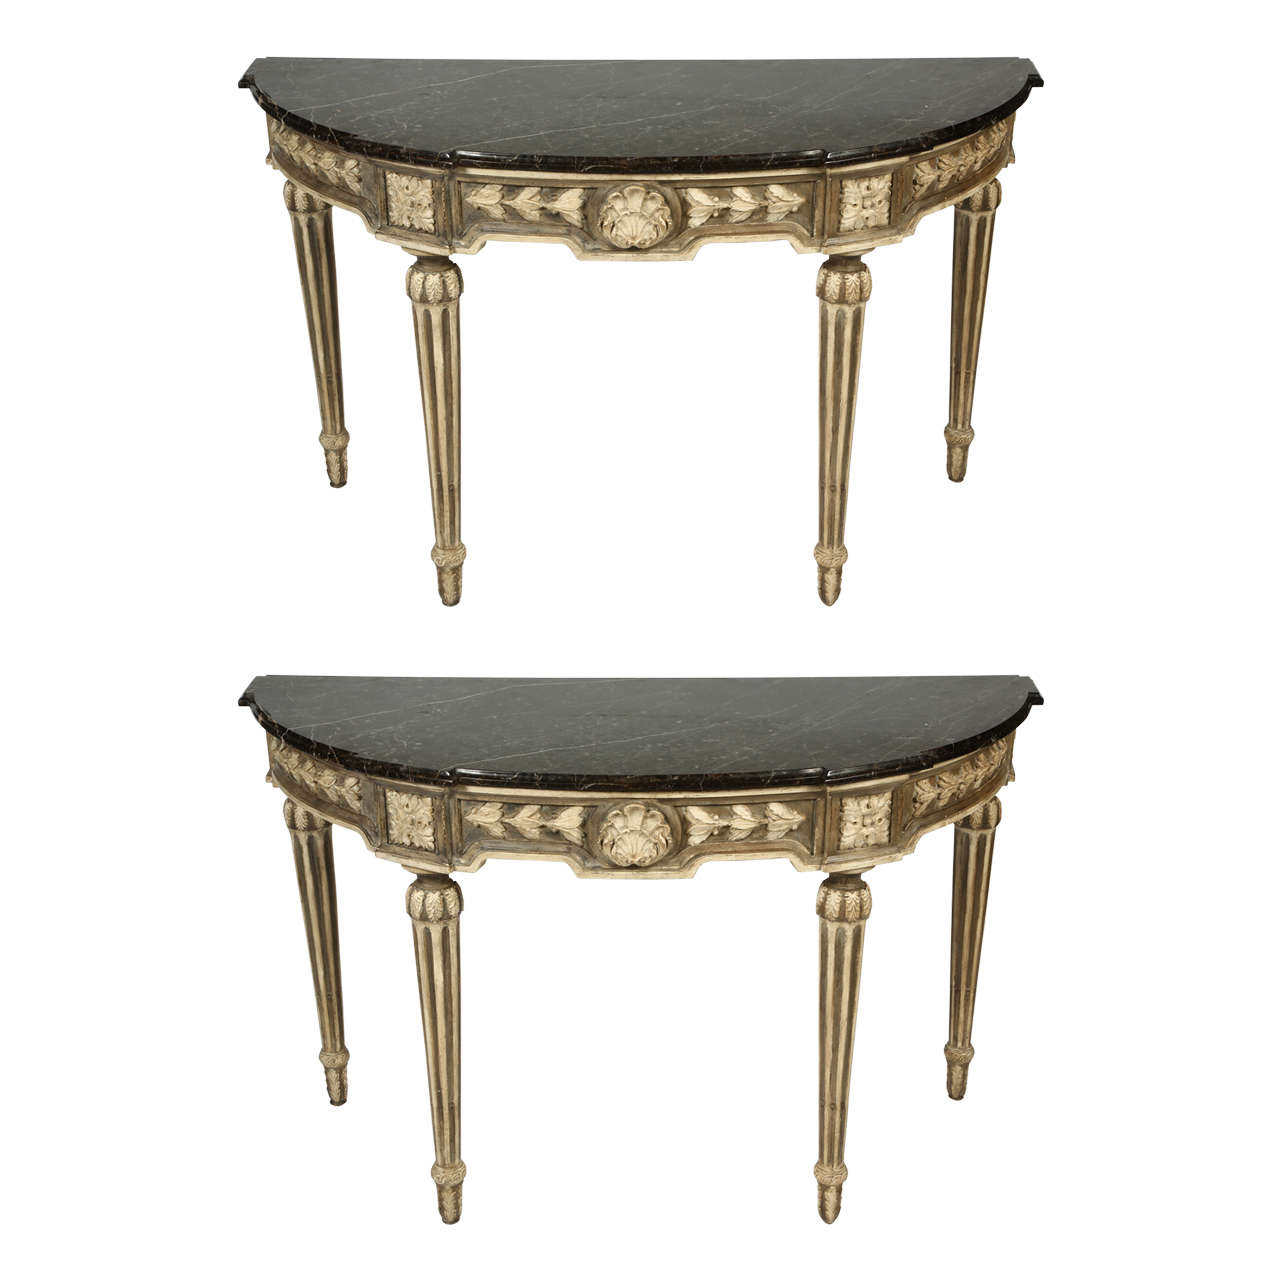 Pair of french louis xvi style demilune console tables with marble pair of french louis xvi style demilune console tables with marble tops 1 geotapseo Gallery